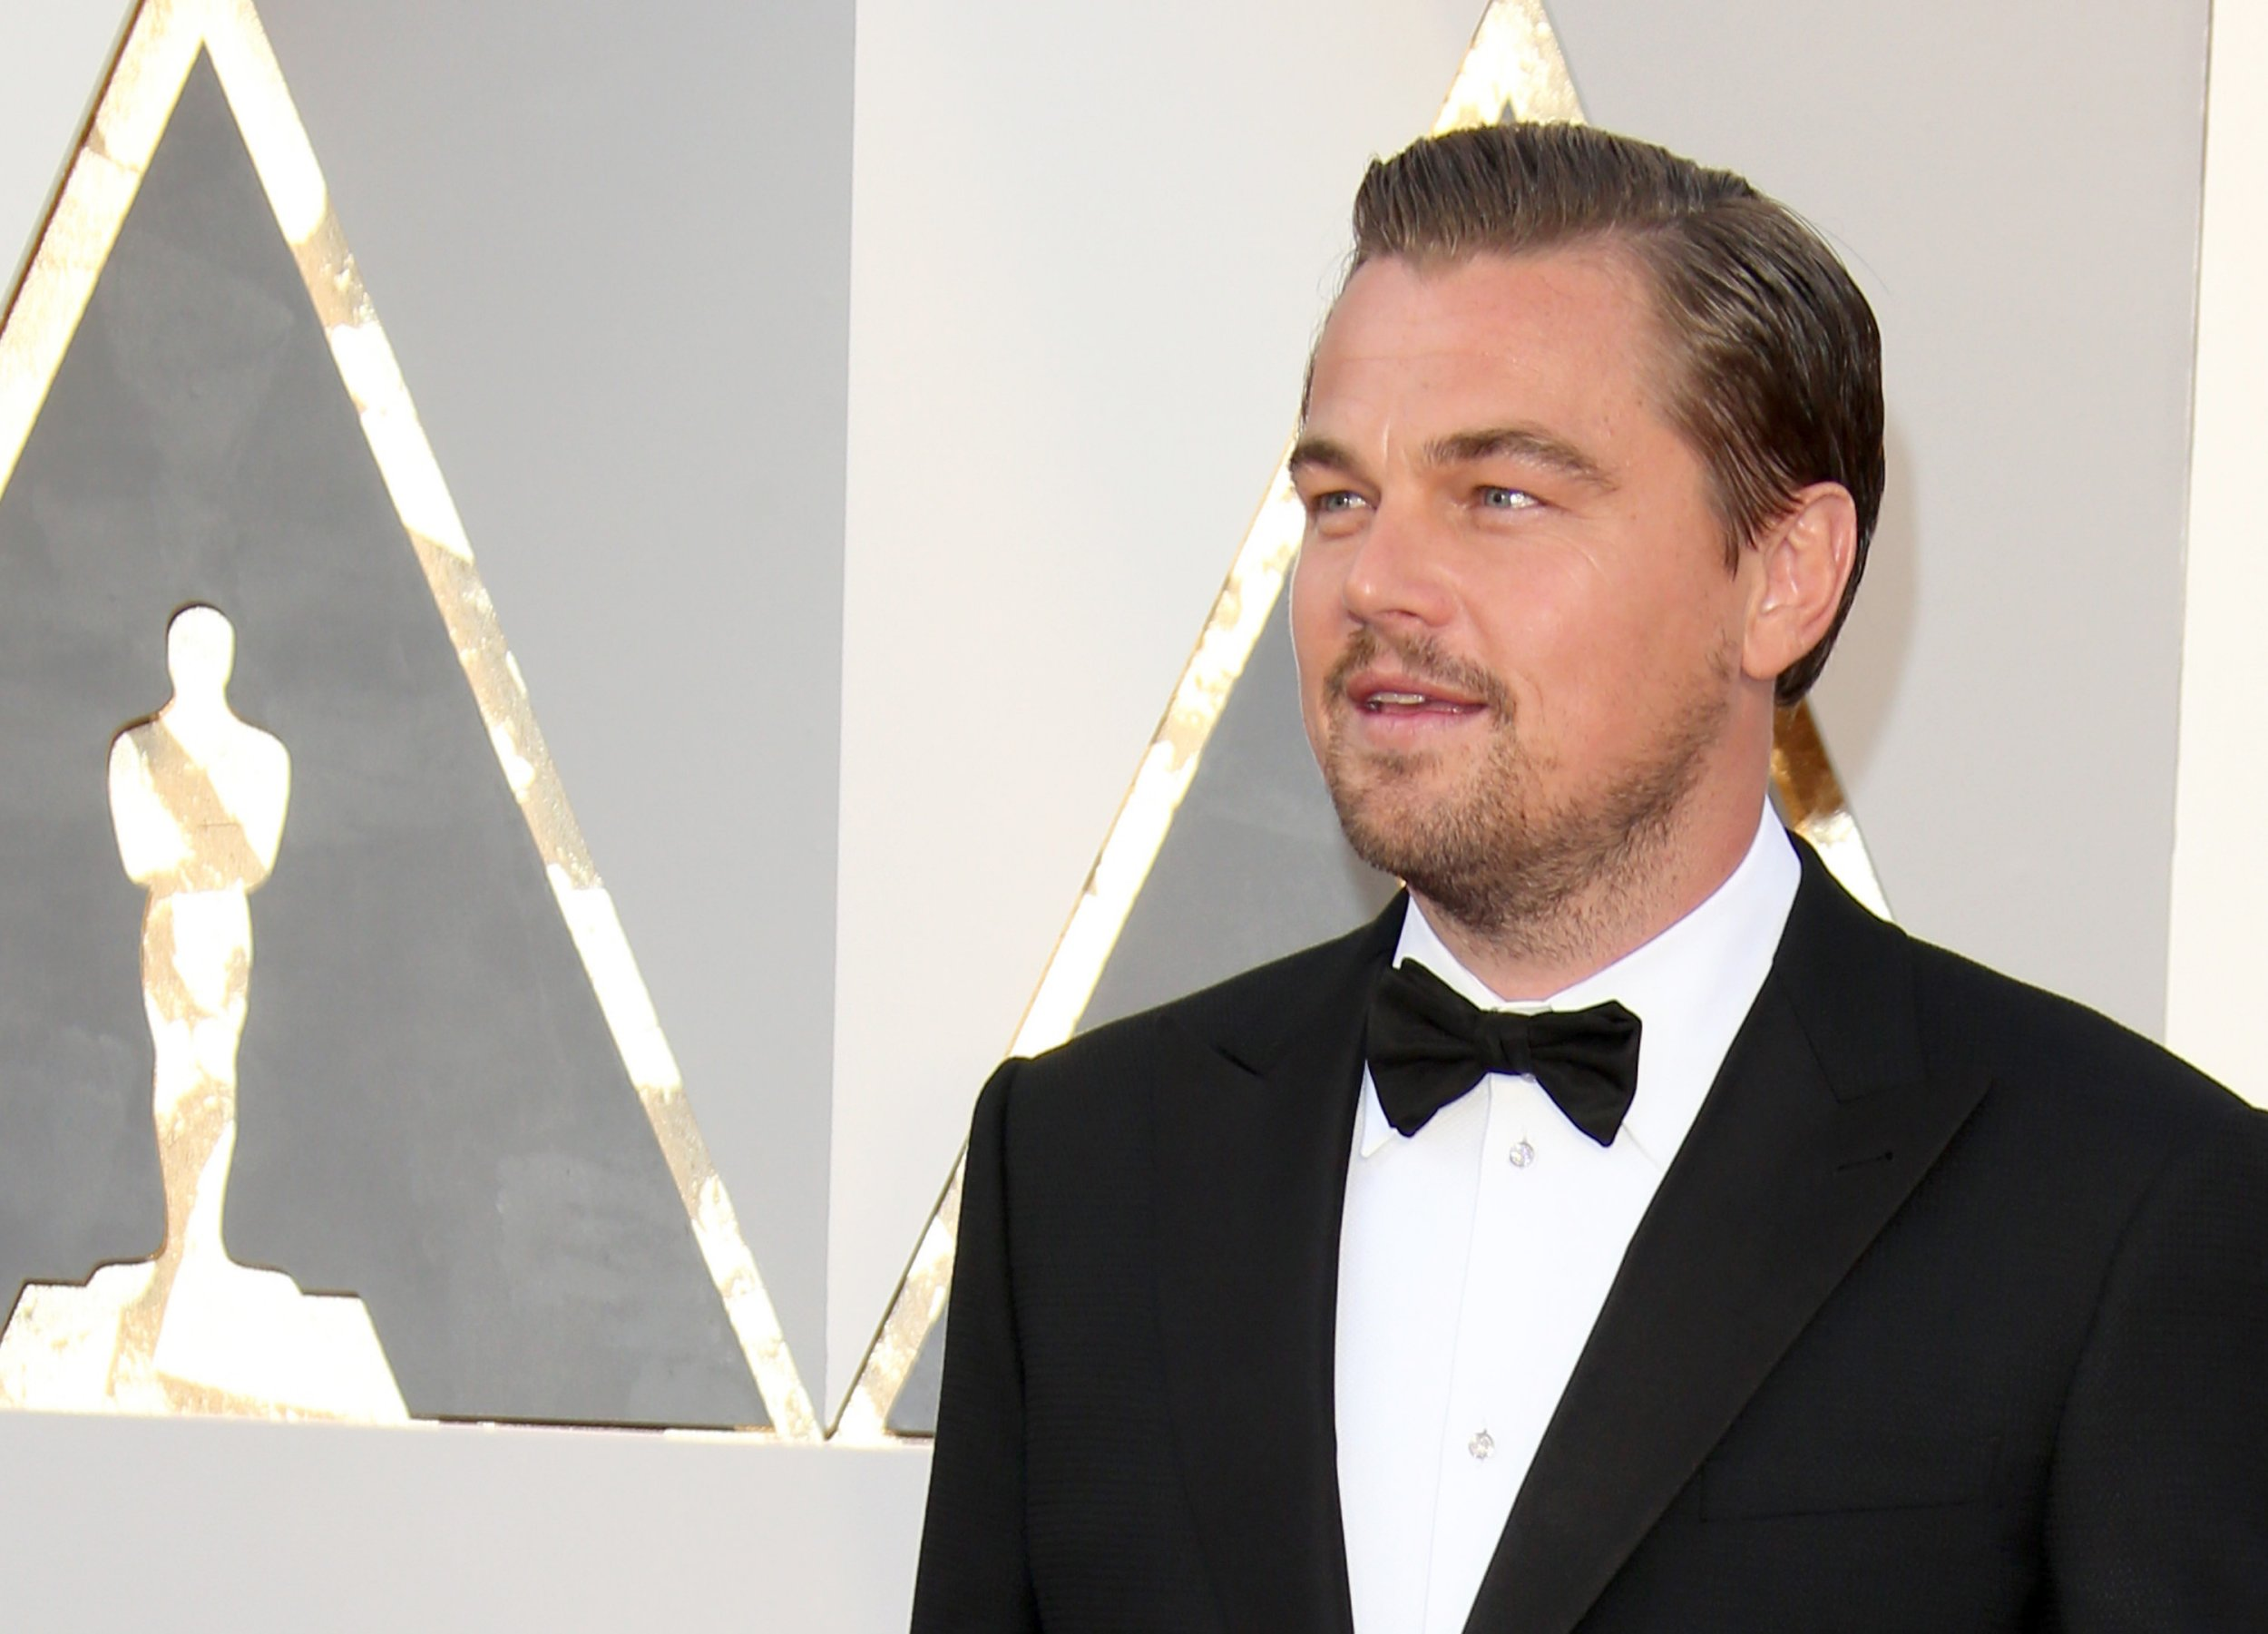 HOLLYWOOD, CA - FEBRUARY 28: Actor Leonardo DiCaprio attends the 88th Annual Academy Awards at Hollywood & Highland Center on February 28, 2016 in Hollywood, California. (Photo by Dan MacMedan/WireImage)